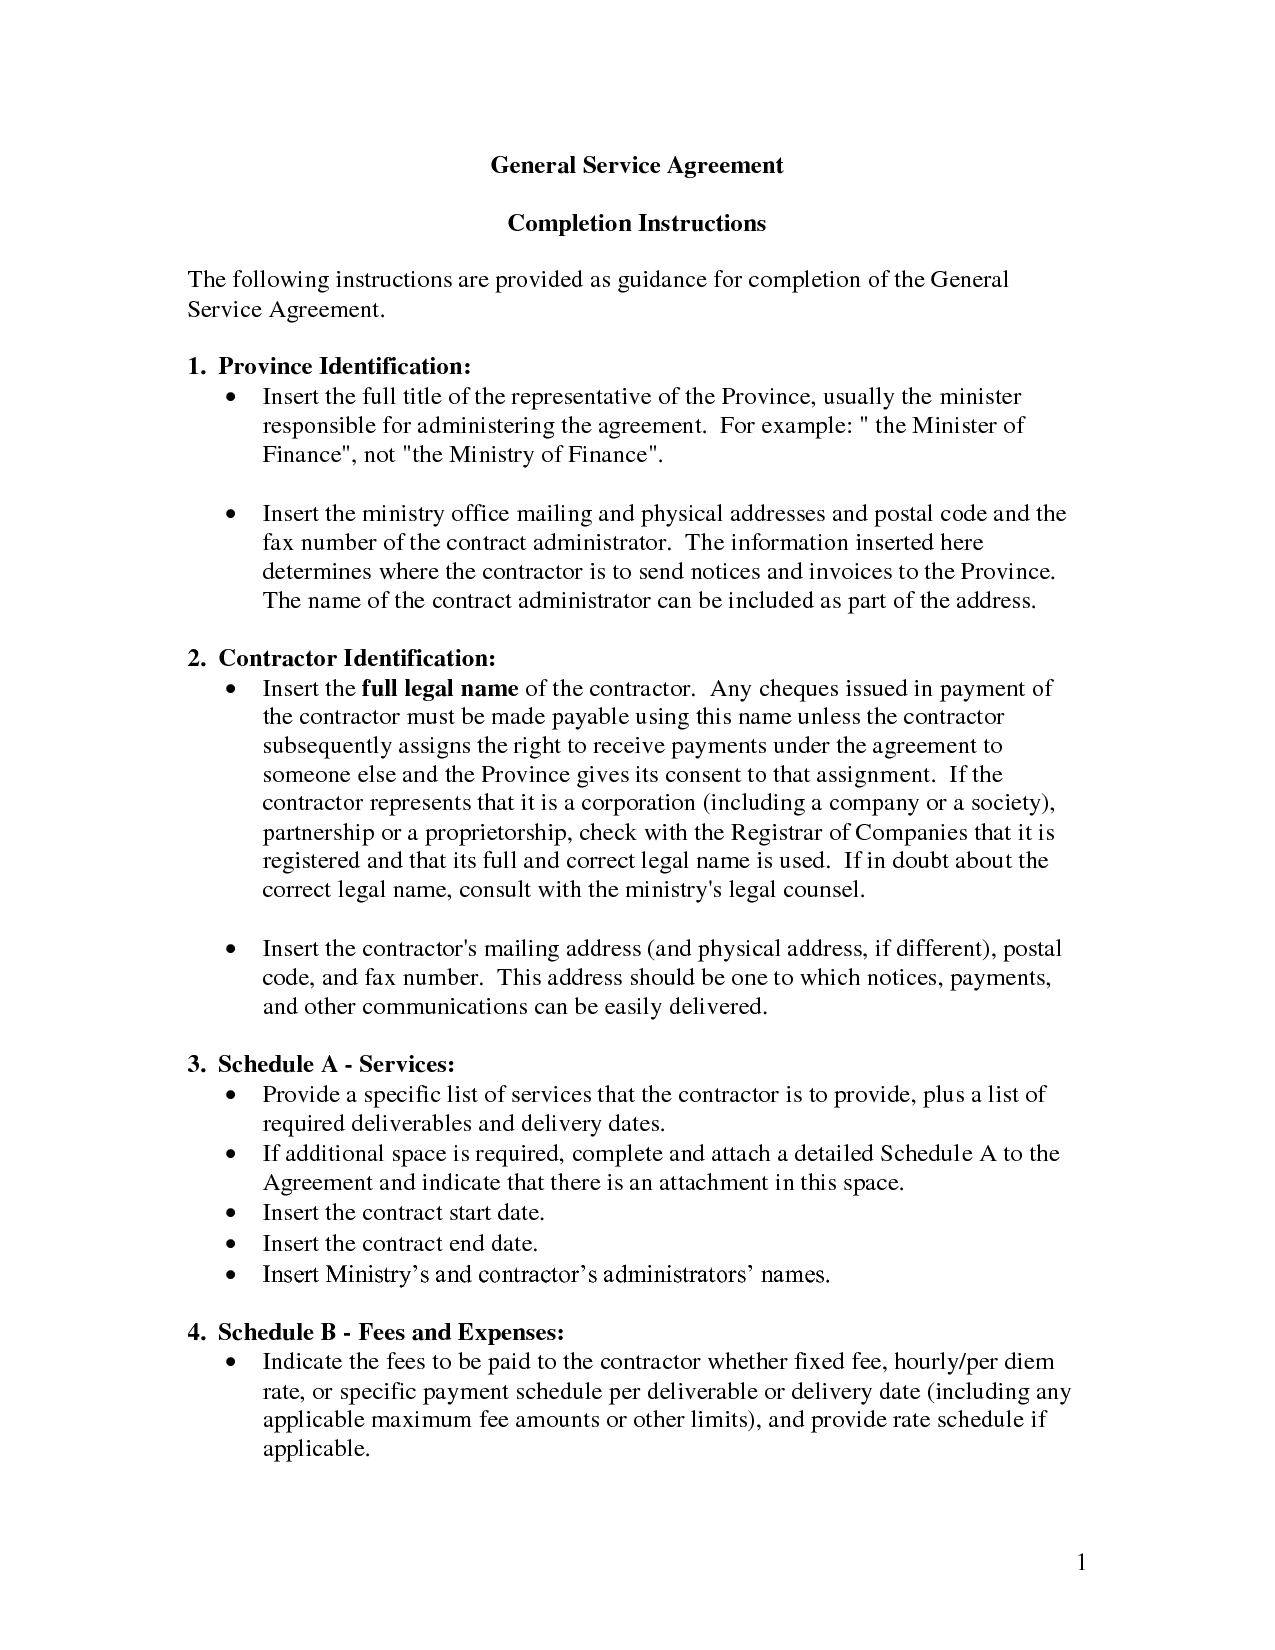 General Service Agreement Template by banter - general contract for ...